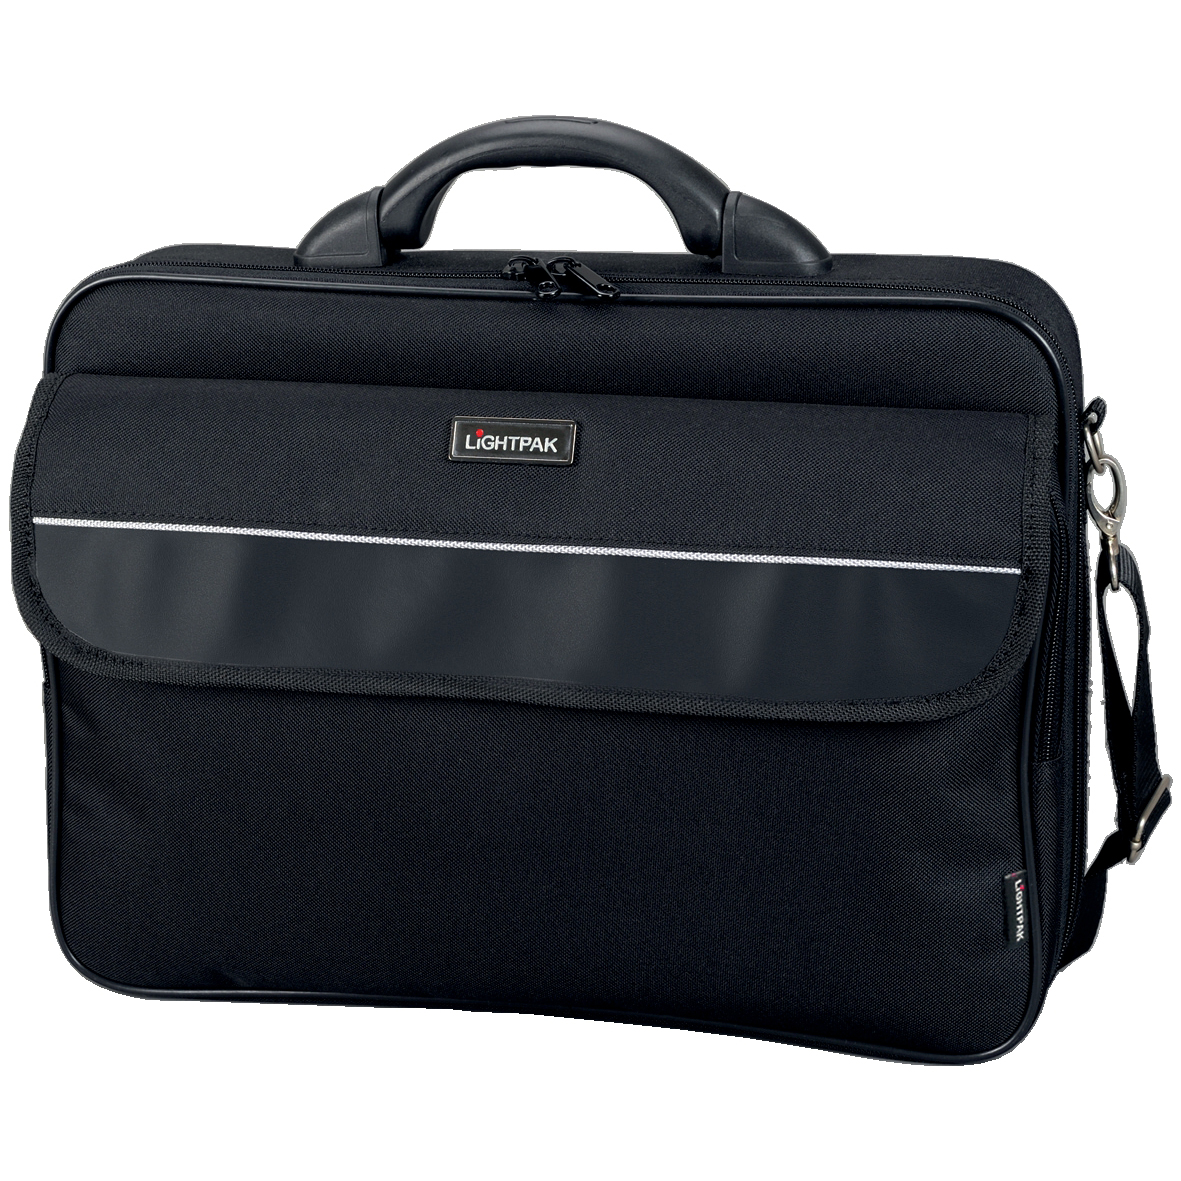 Briefcases & Luggage Lightpak Elite Large Laptop Case Nylon Capacity 17in Black Ref 46111